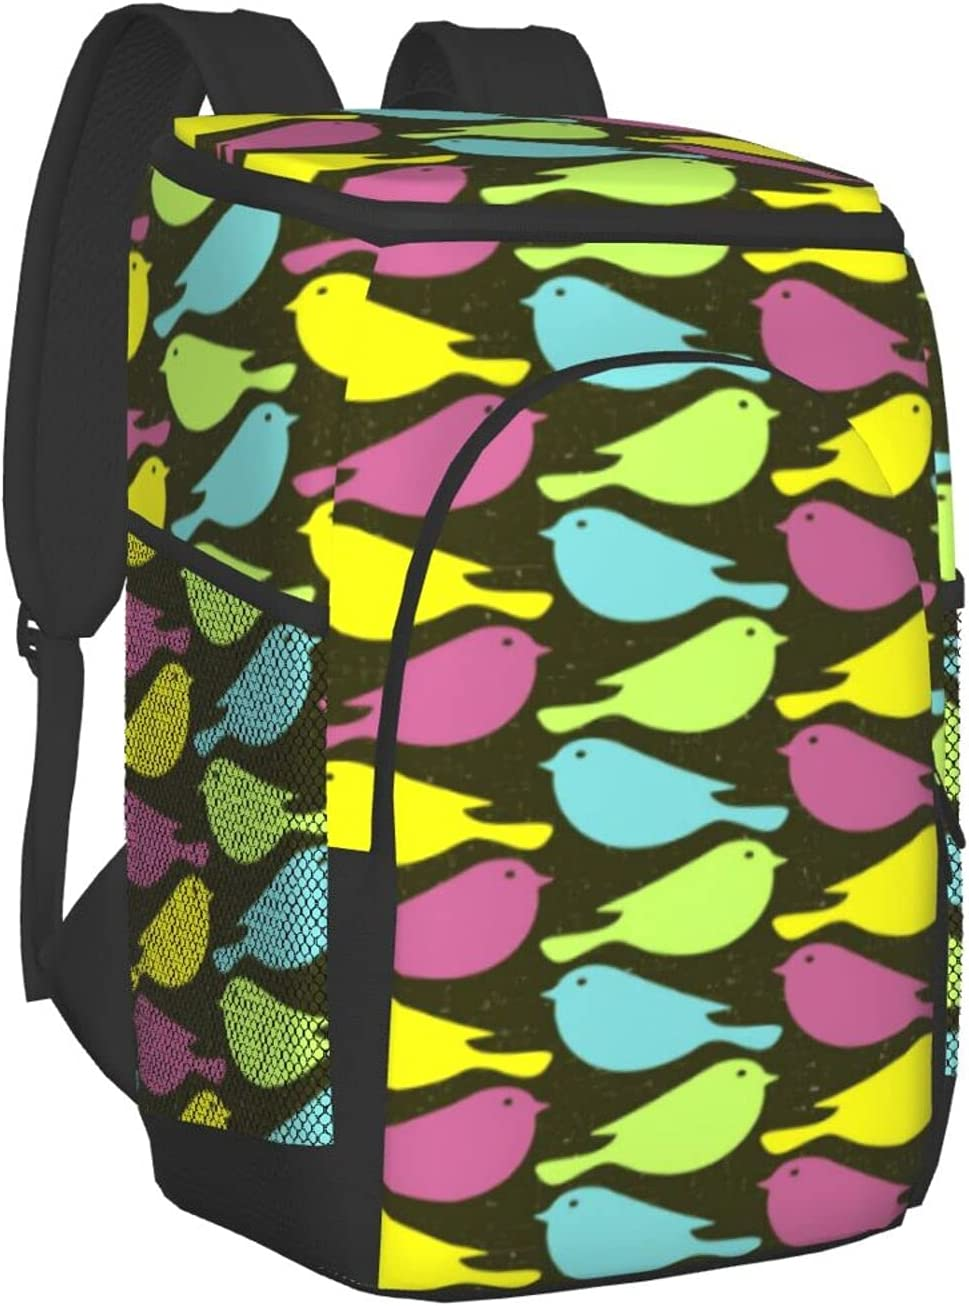 Colored Neat In Max 50% OFF stock Abstract Bird Nostalgia Insulated B Backpack Cooler